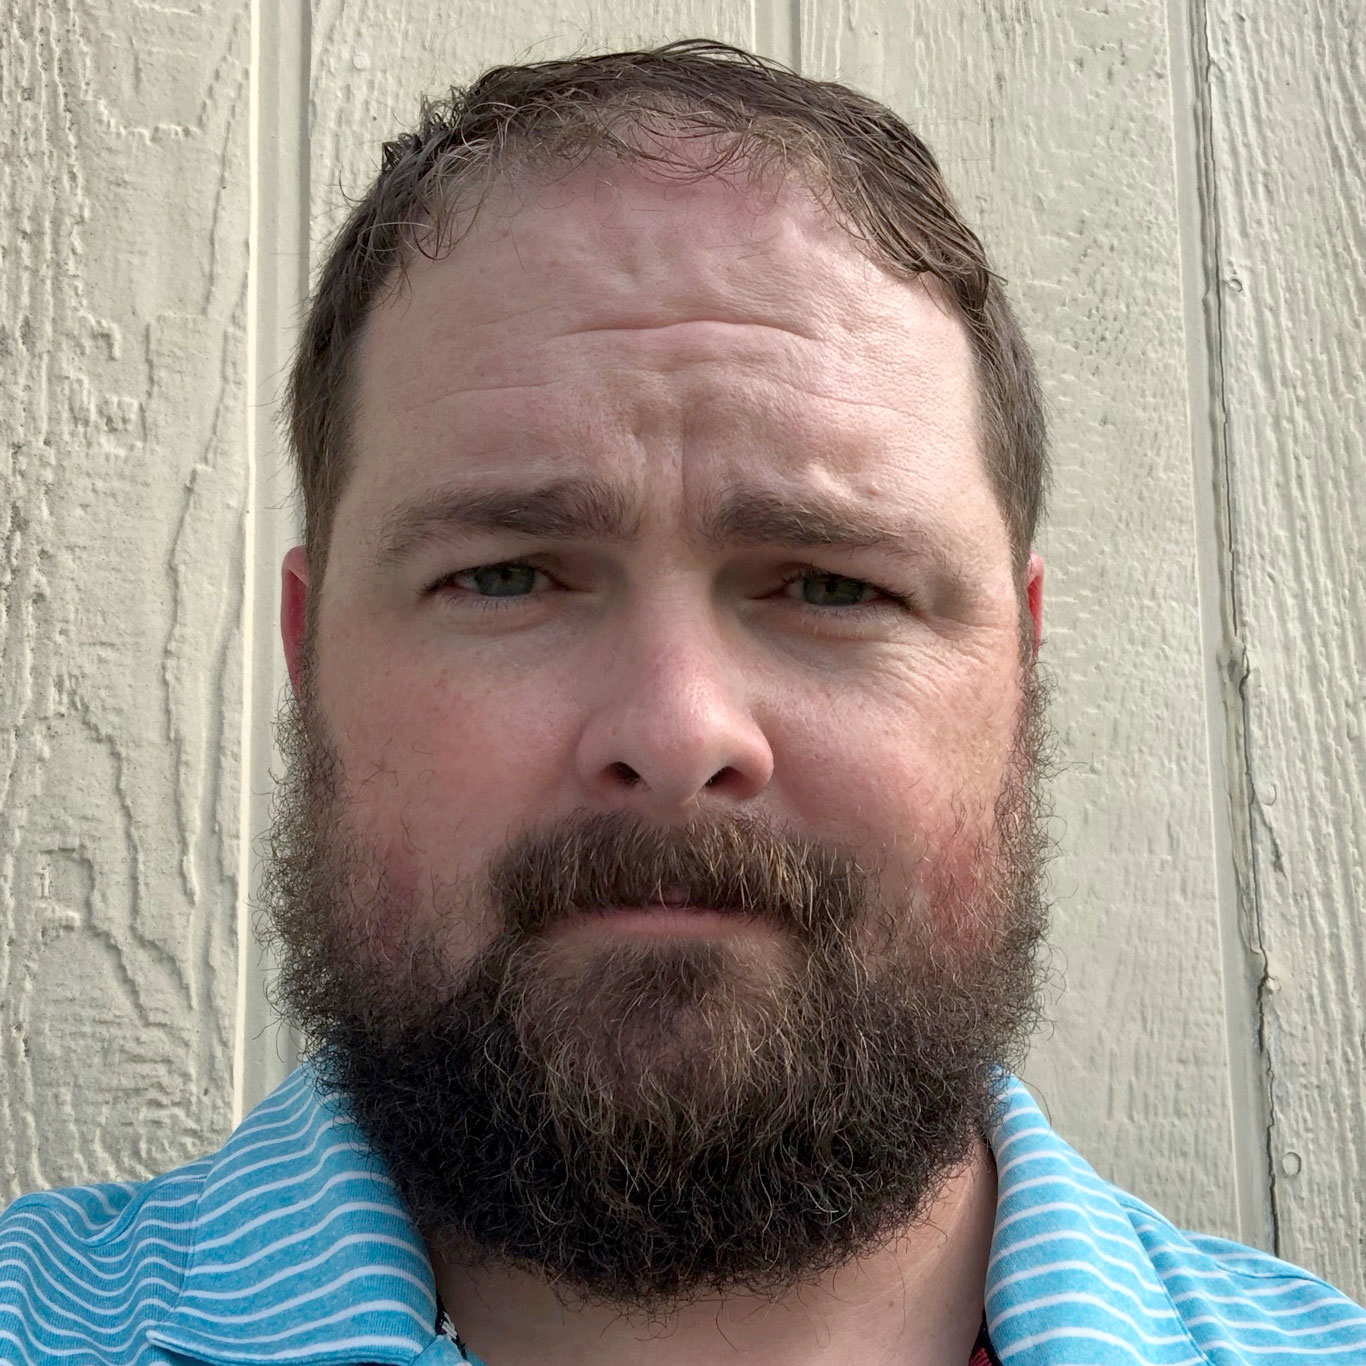 Matthew Way is the STREAM lab teacher at Sweeny Elementary in Sweeny, TX. Now in his fifth year of teaching, he has made a name for himself by writing and receiving a grant to help start a new drone program at the school. Matthew loves interacting with his students and feels blessed to be part of their learning experience. He has a bachelor of science in Education from the University of Houston and hopes to continue using it to teach and reach students for many more years.